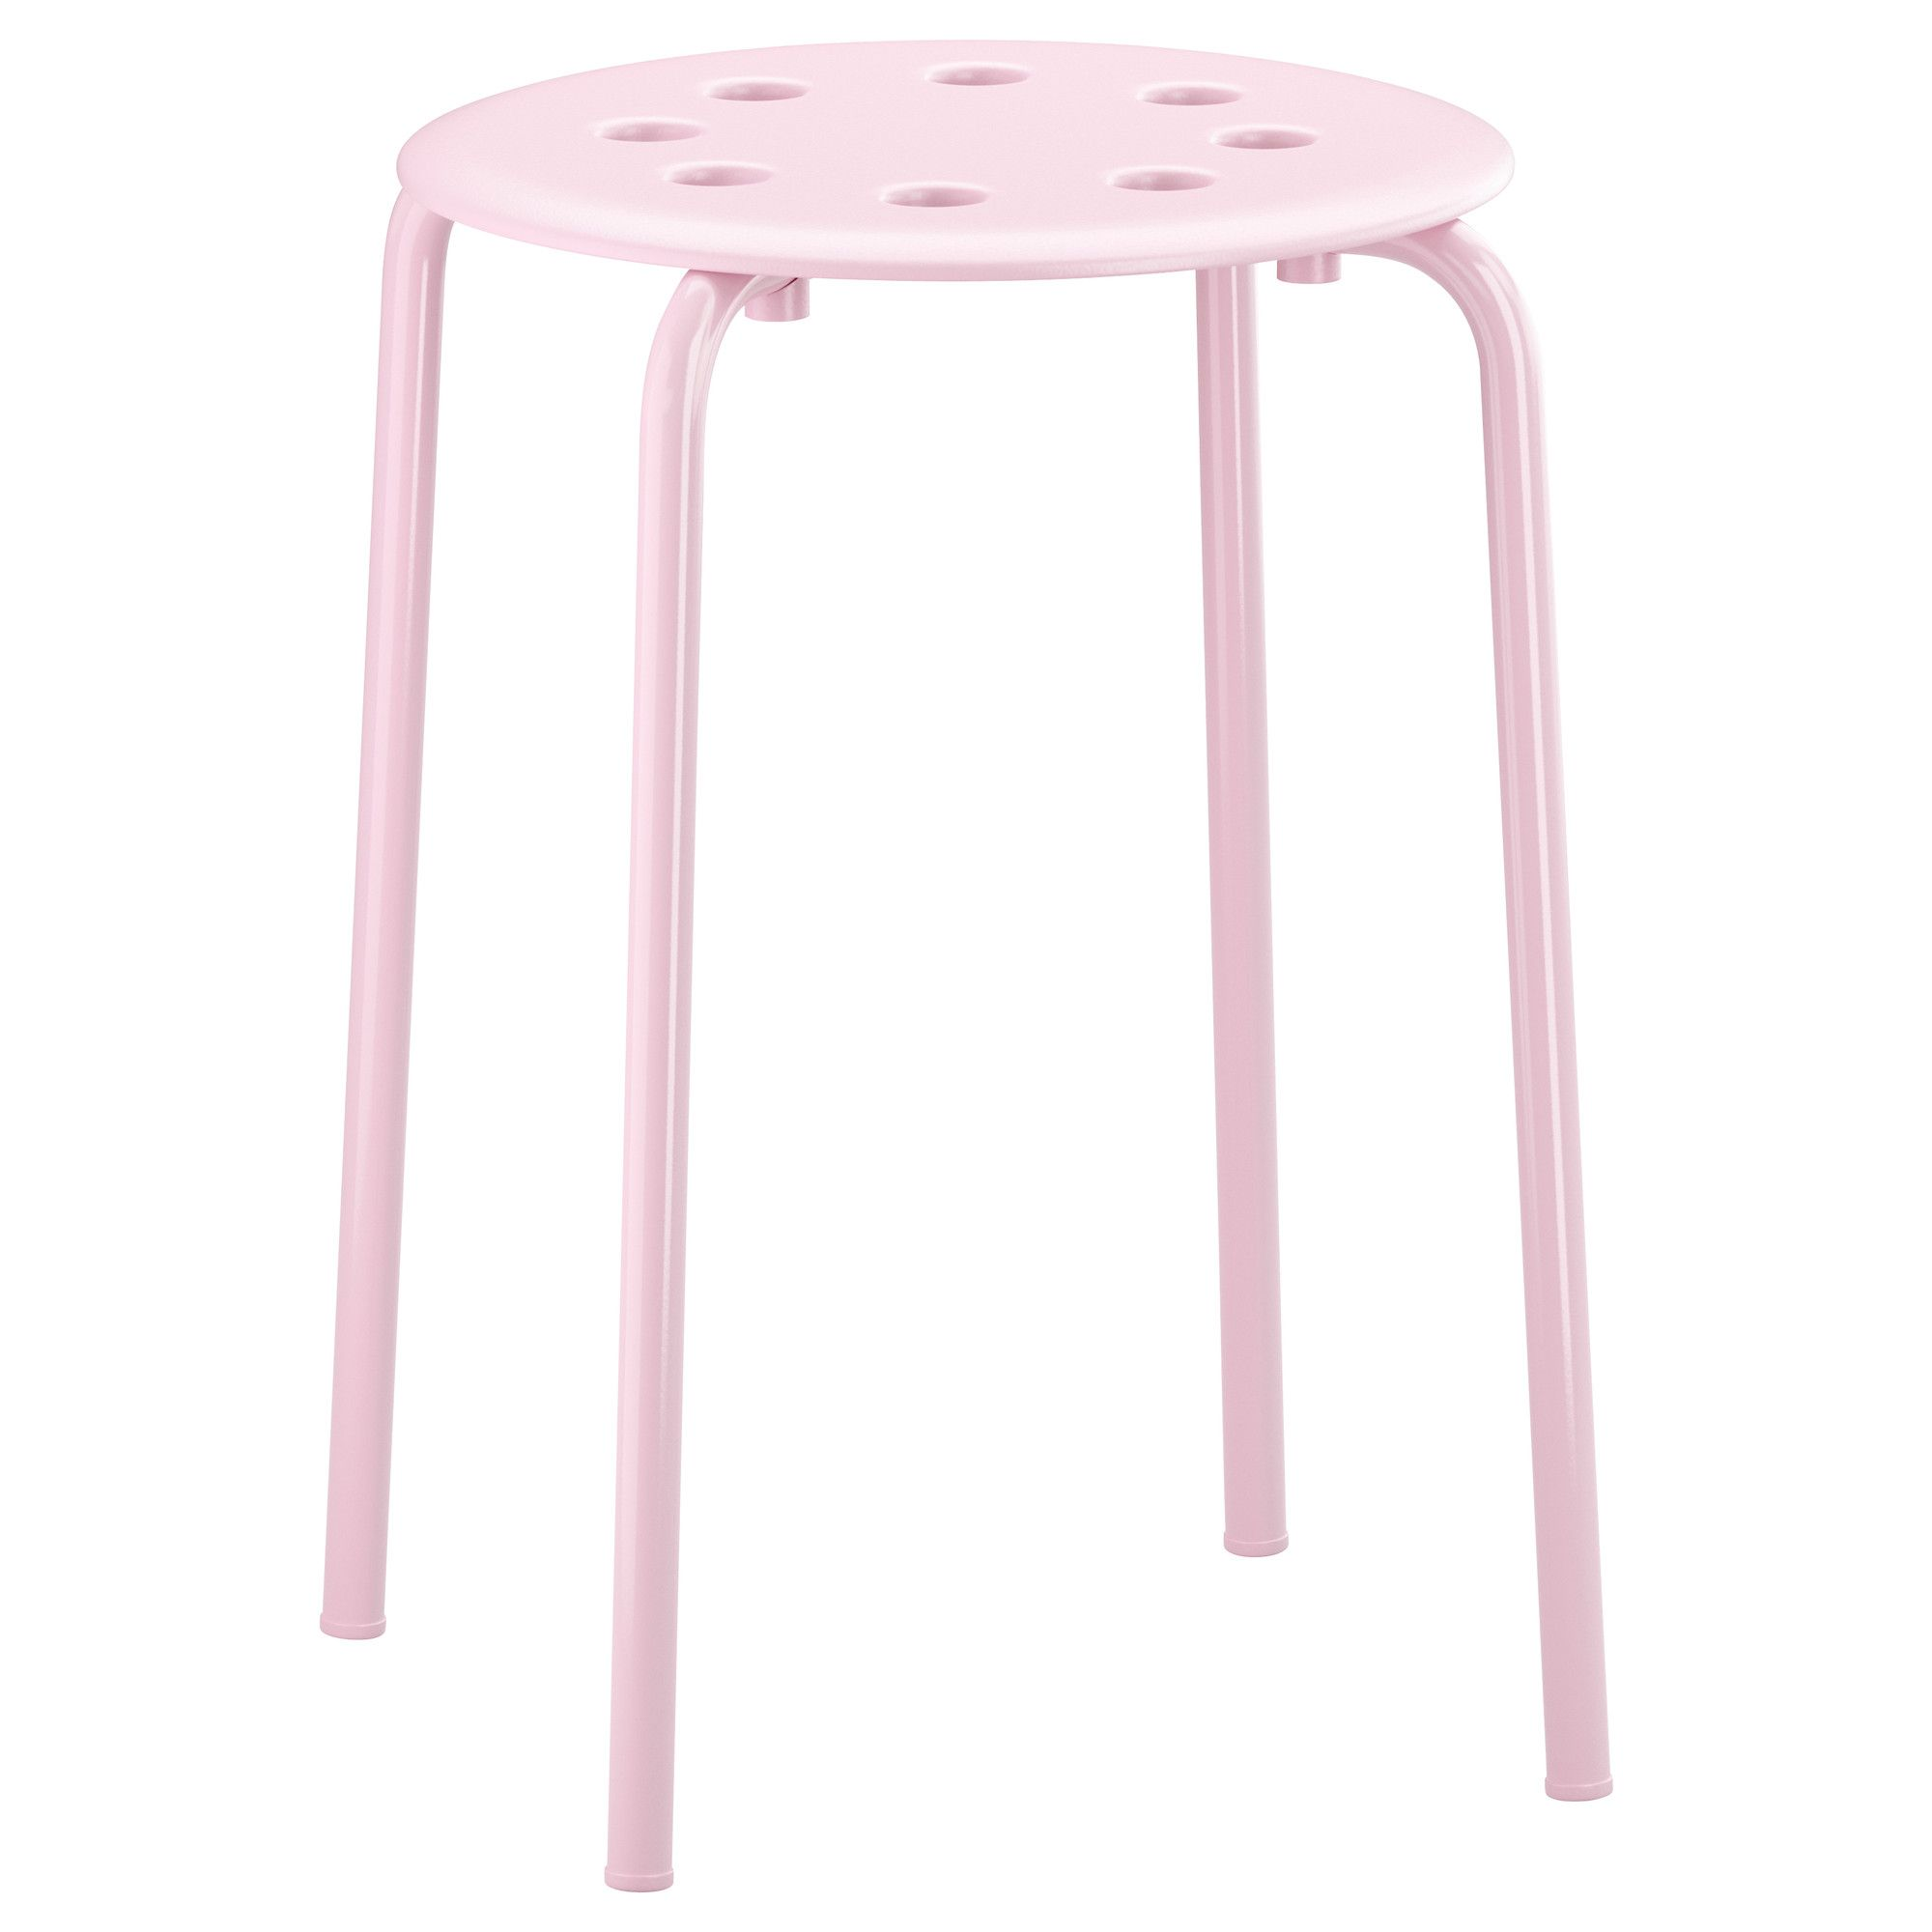 stunning marius stool light pink ikea ella with lampadaire ikea blanc. Black Bedroom Furniture Sets. Home Design Ideas